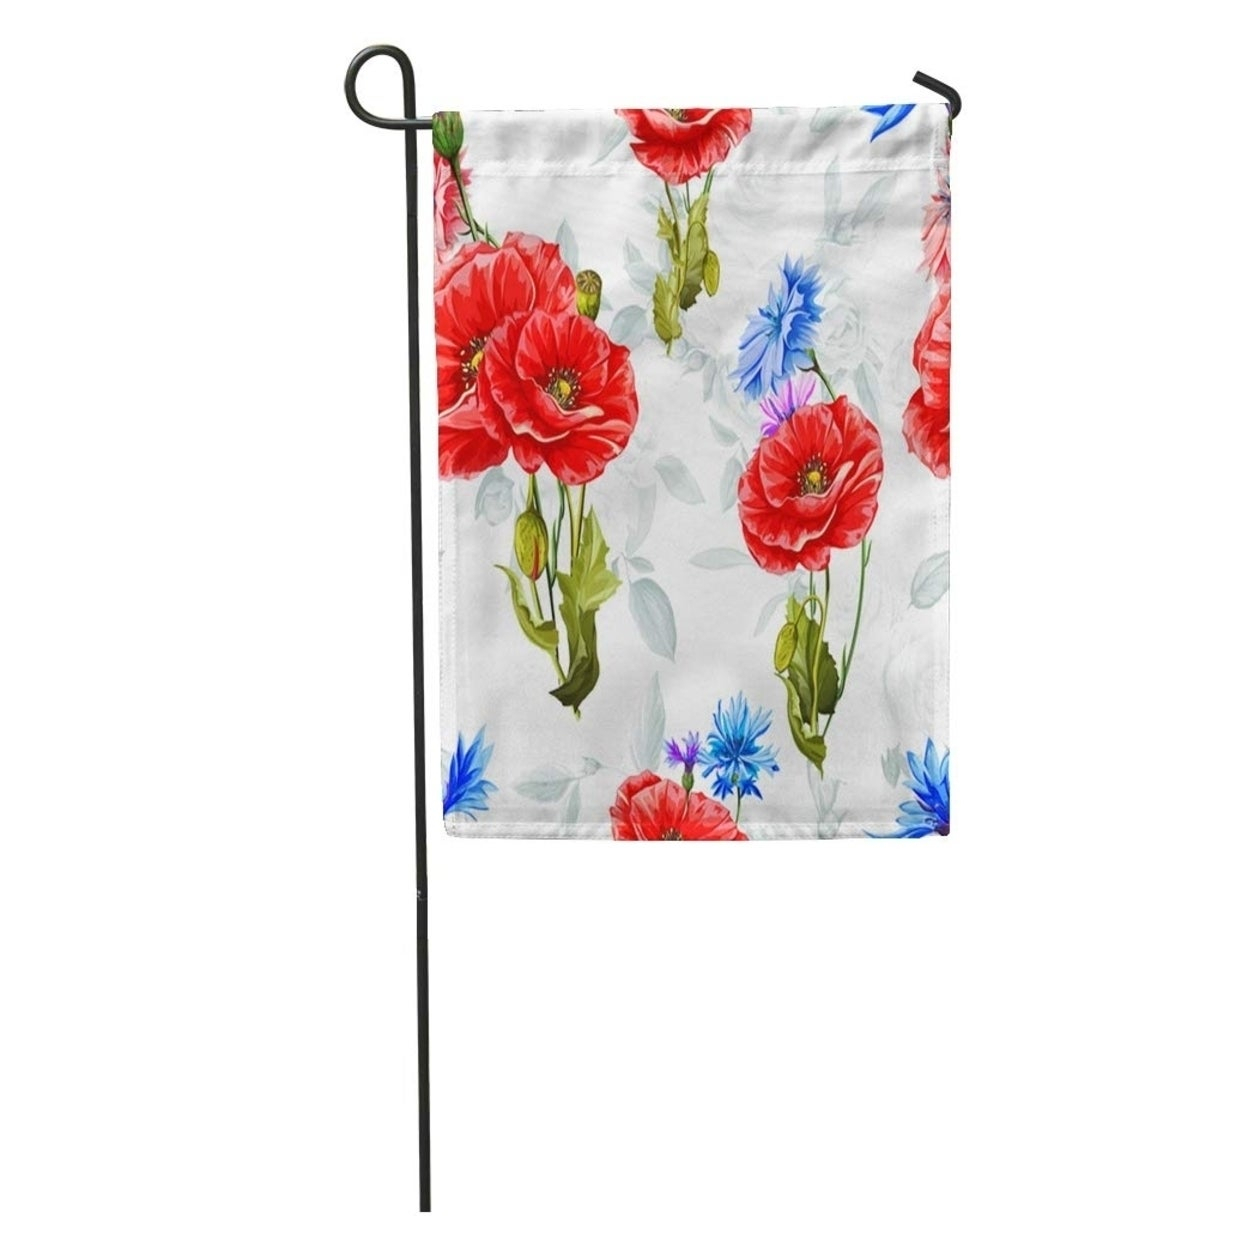 Watercolor Poppy Cornflowers And Roses On Pattern Of Flowers Blue Garden Flag Decorative Flag House Banner 28X40 Inch Inside Wilde Poppies Ceramic Garden Stools (View 21 of 25)